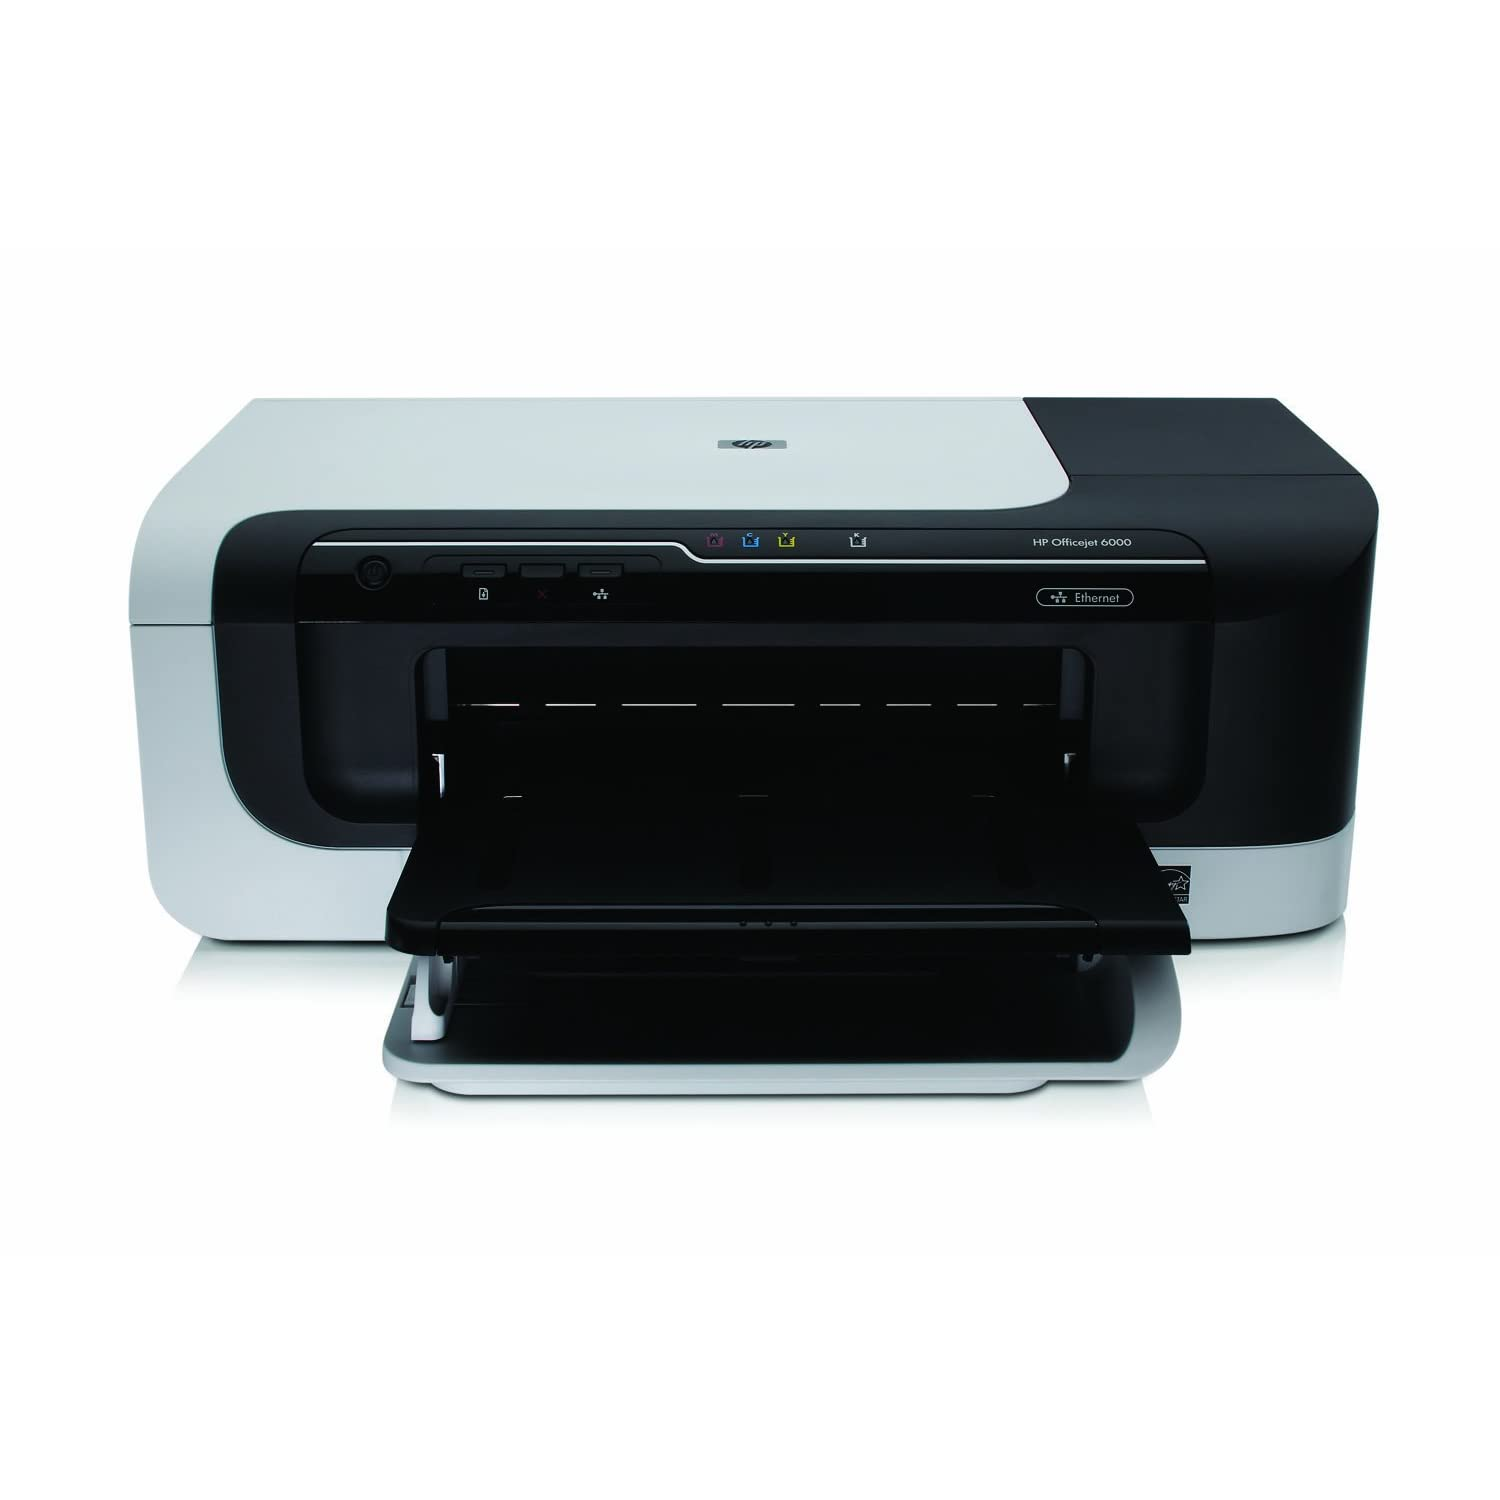 HP Officejet 6000 Color Inkjet Printer